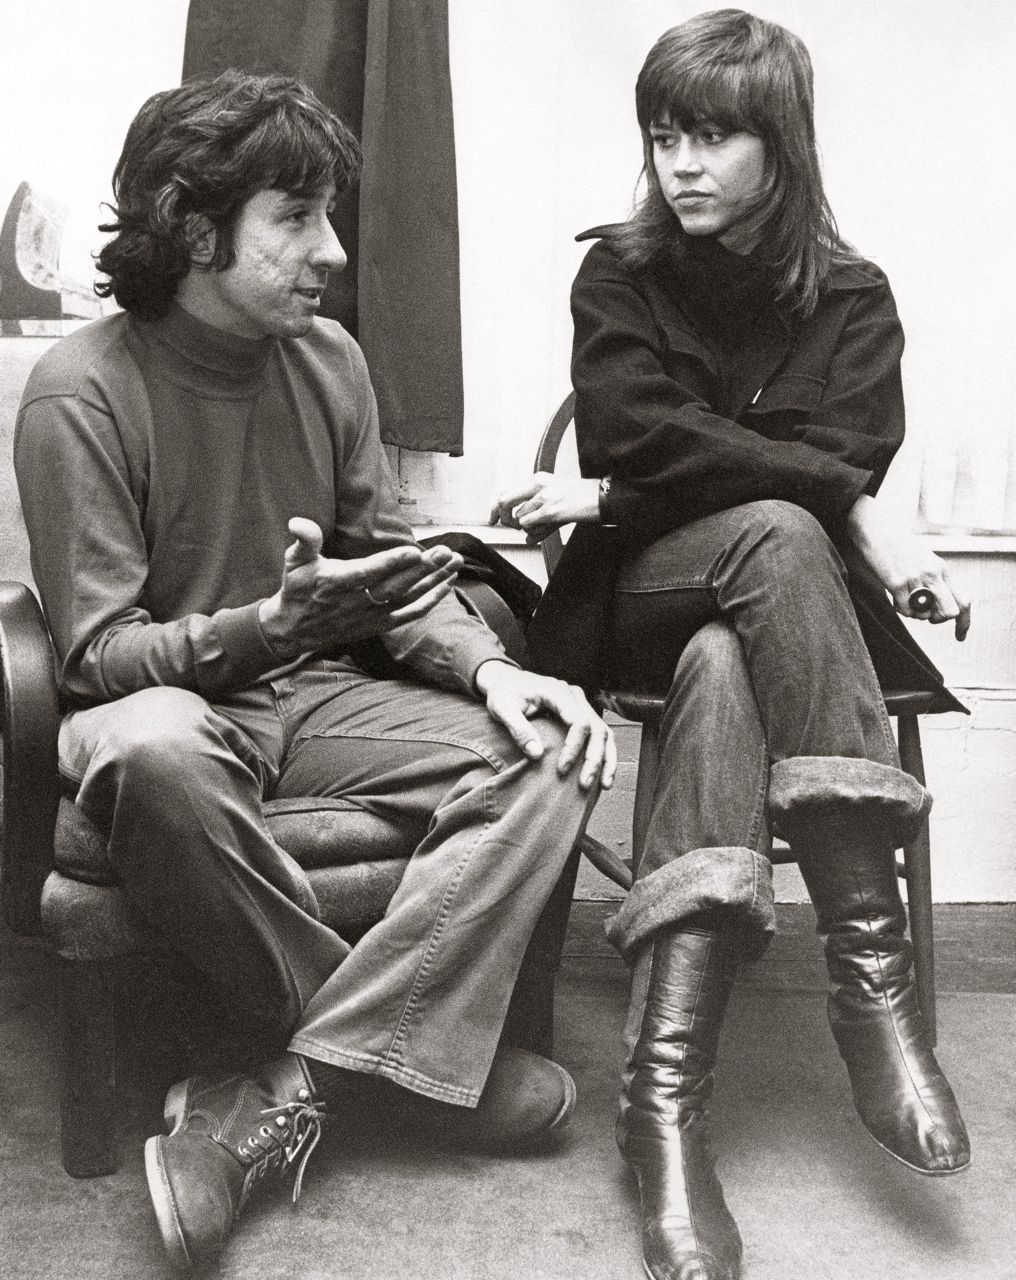 Tom Hayden, who was a co-founder of the SDS, and Jane Fonda talk at the home of a friend in London in this 1972. Associated Press